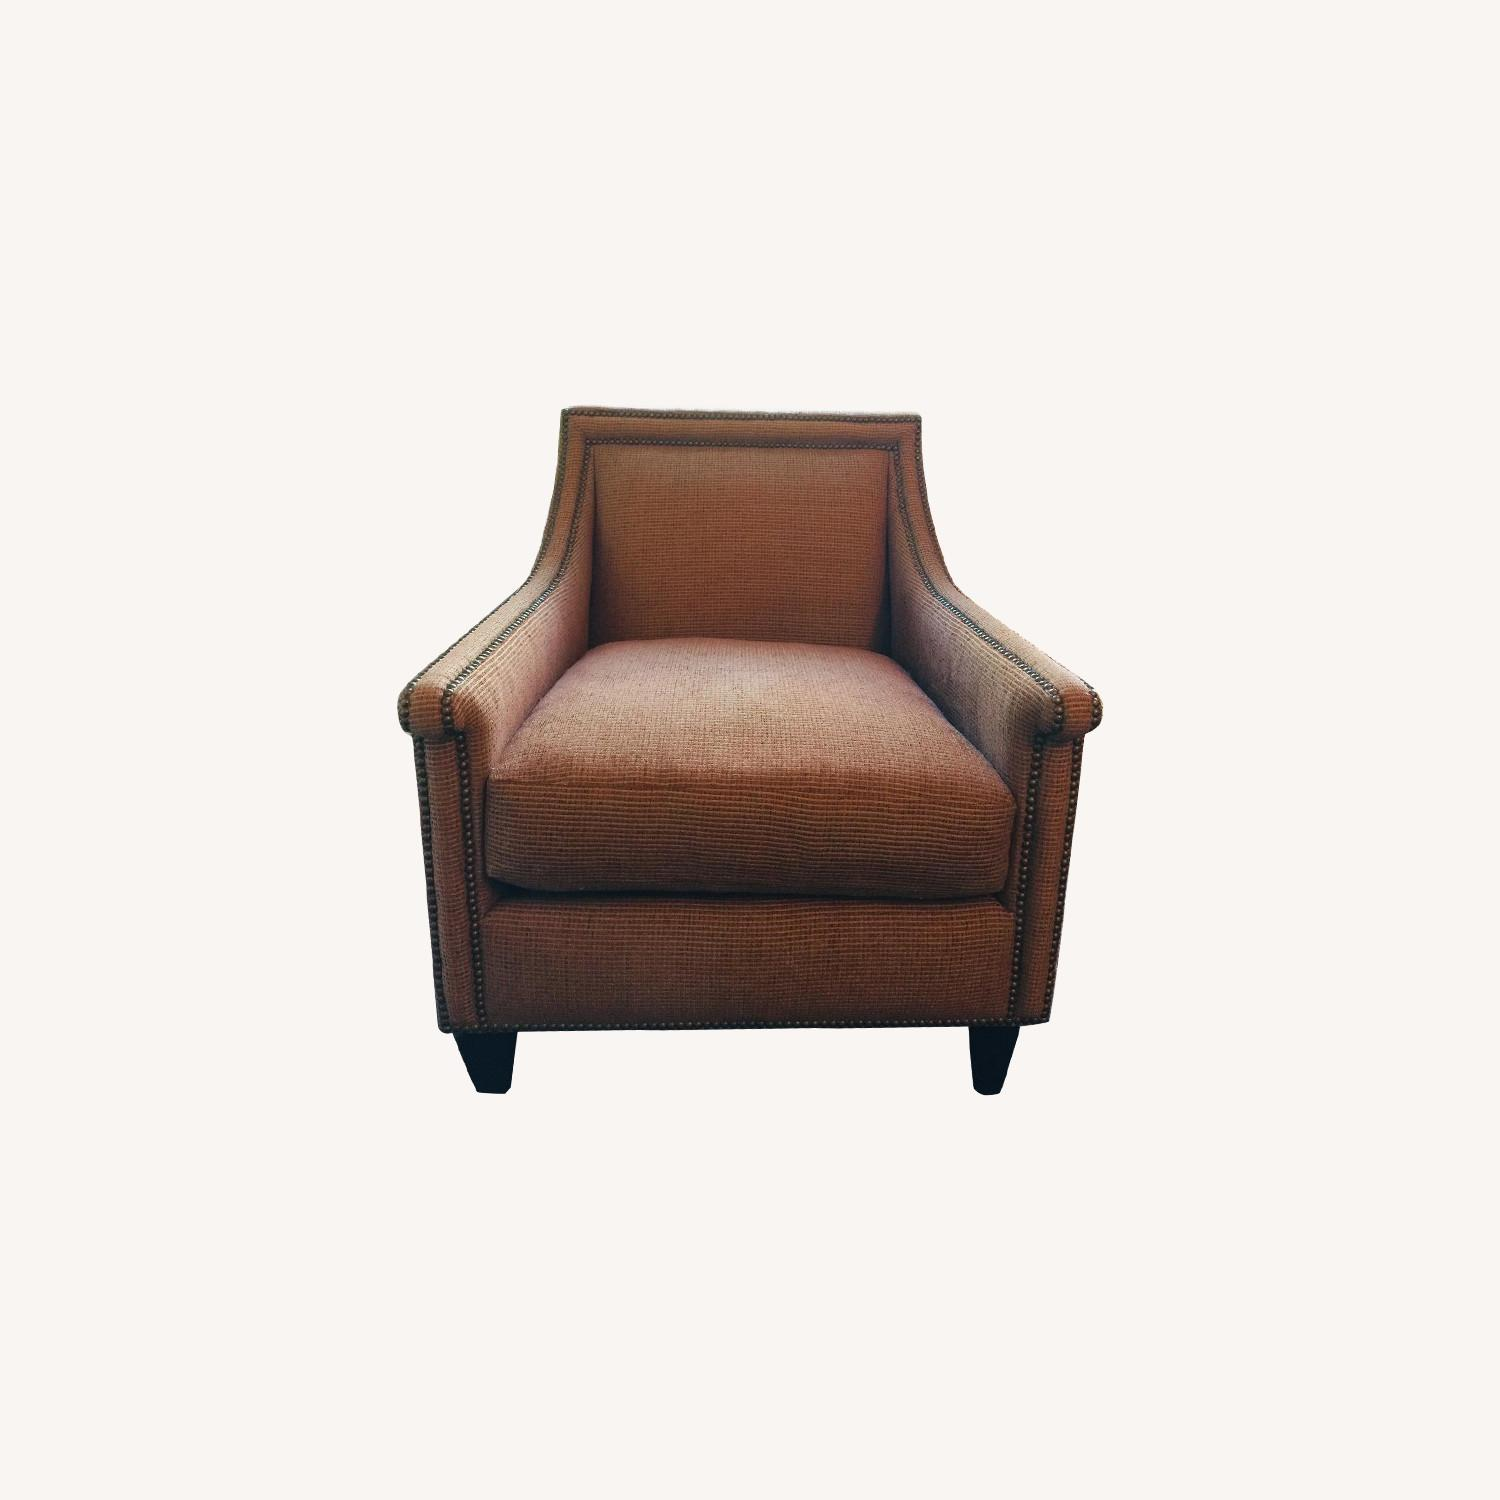 Lillian August Barrister Armchair - image-0